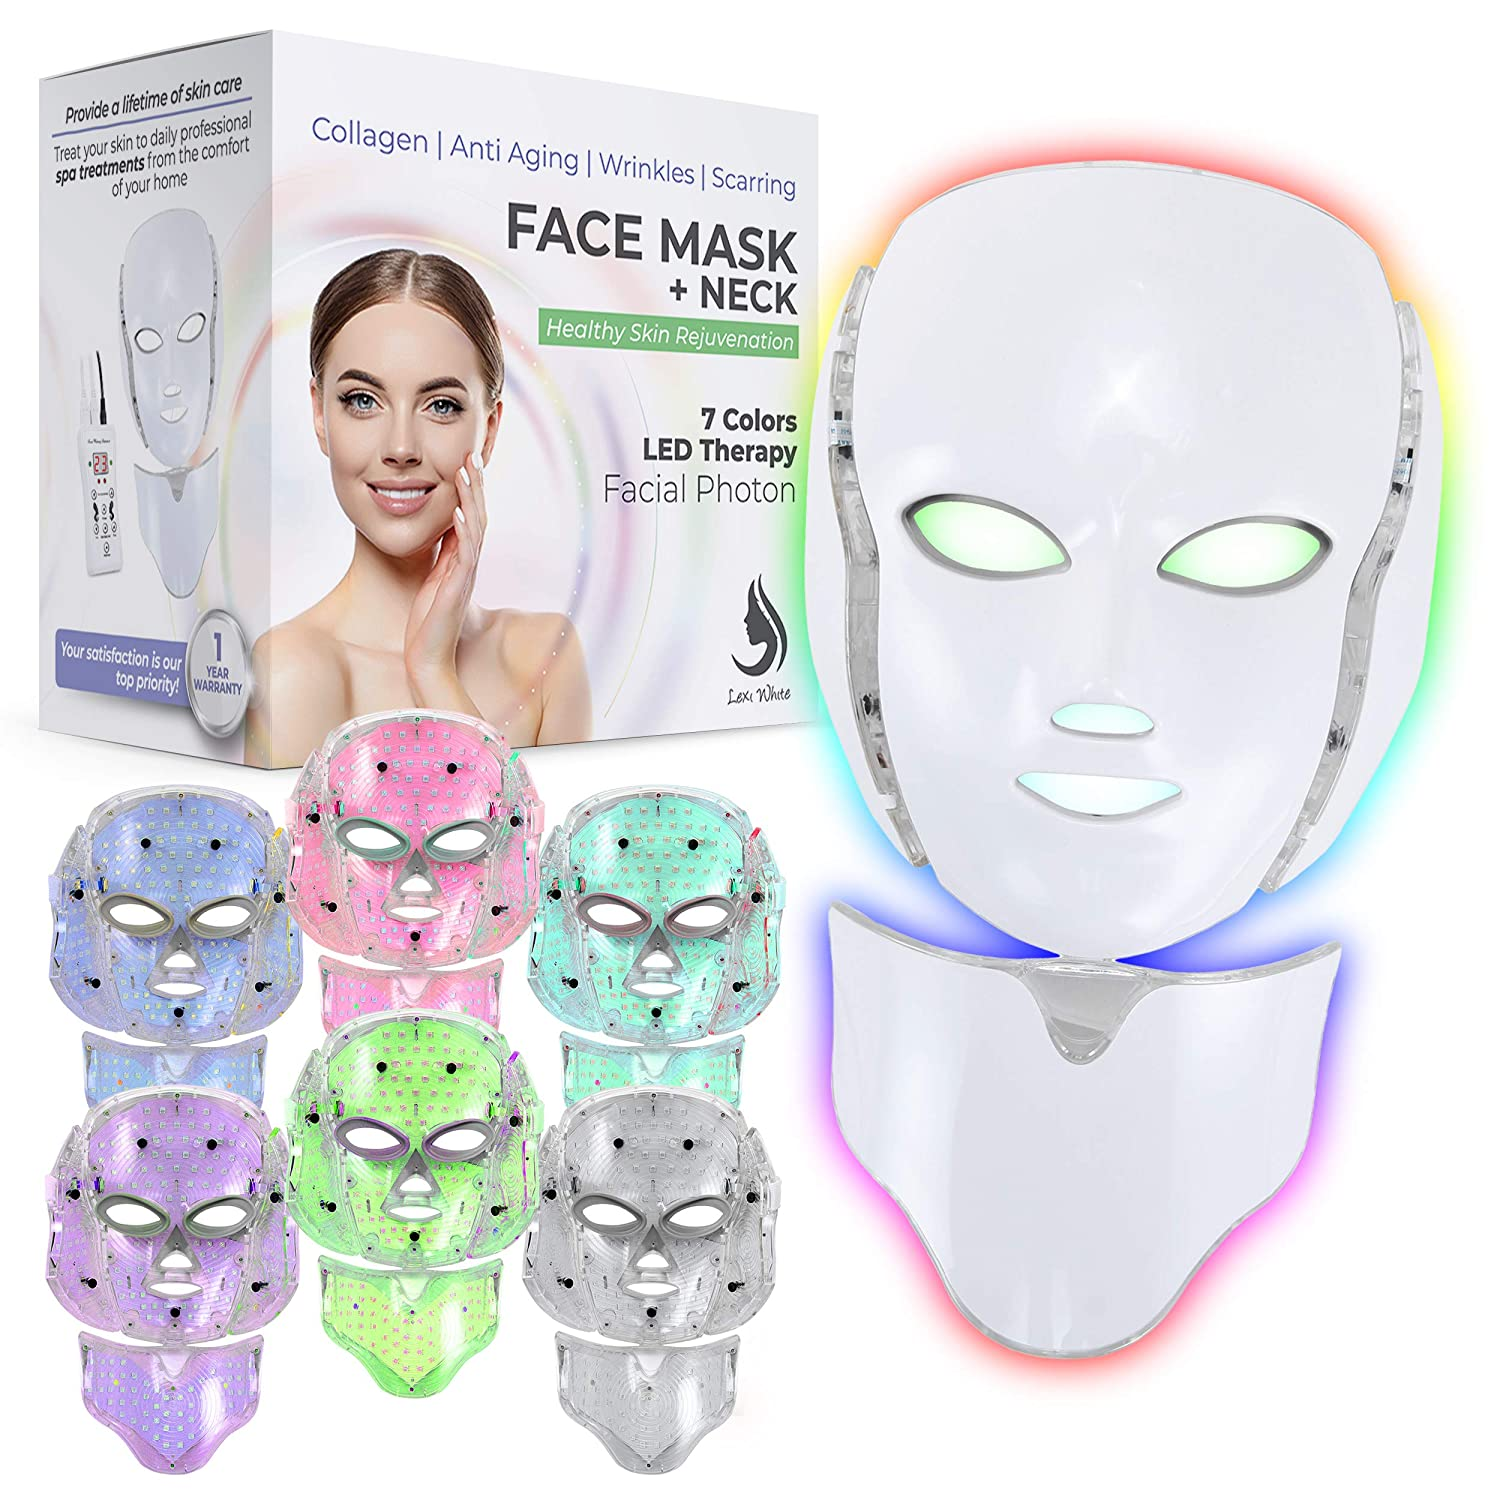 Red Light Therapy LED Face Mask Neck 7 Color   LED Mask Therapy Facial Photon For Healthy Skin Rejuvenation   Collagen, Anti Aging, Wrinkles, Scarring   Korean Skin Care, Facial Skin Care Mask (White)